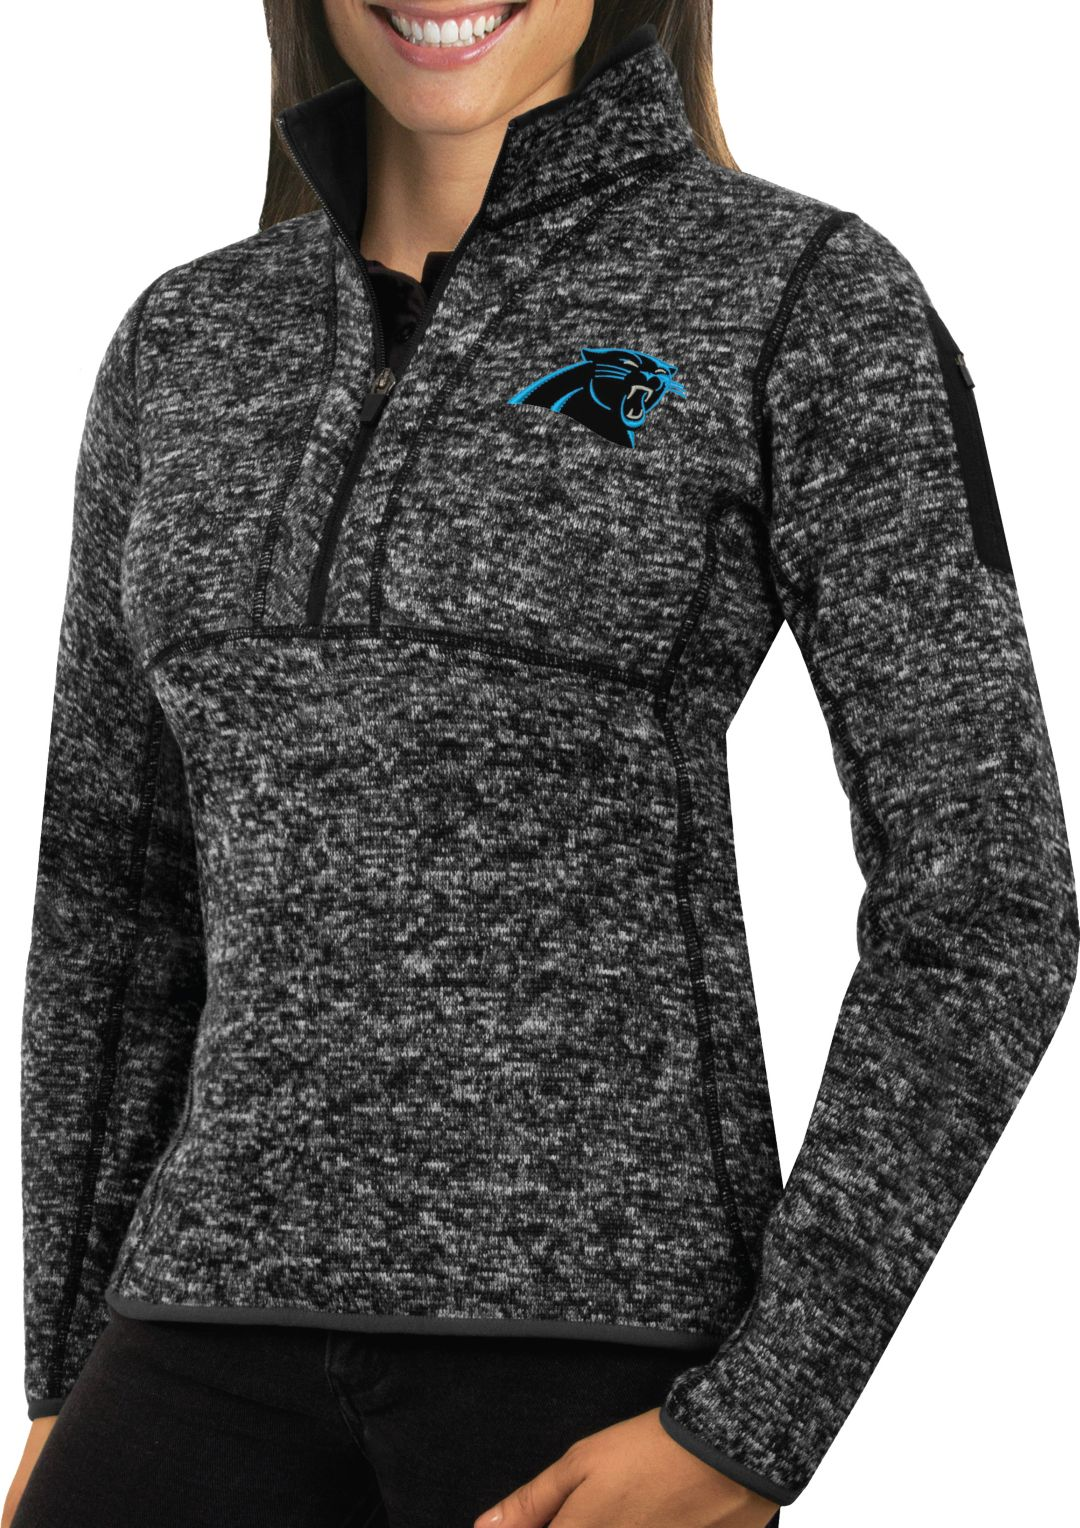 hot sale online a3972 4ad3d Antigua Women's Carolina Panthers Fortune Black Pullover Jacket